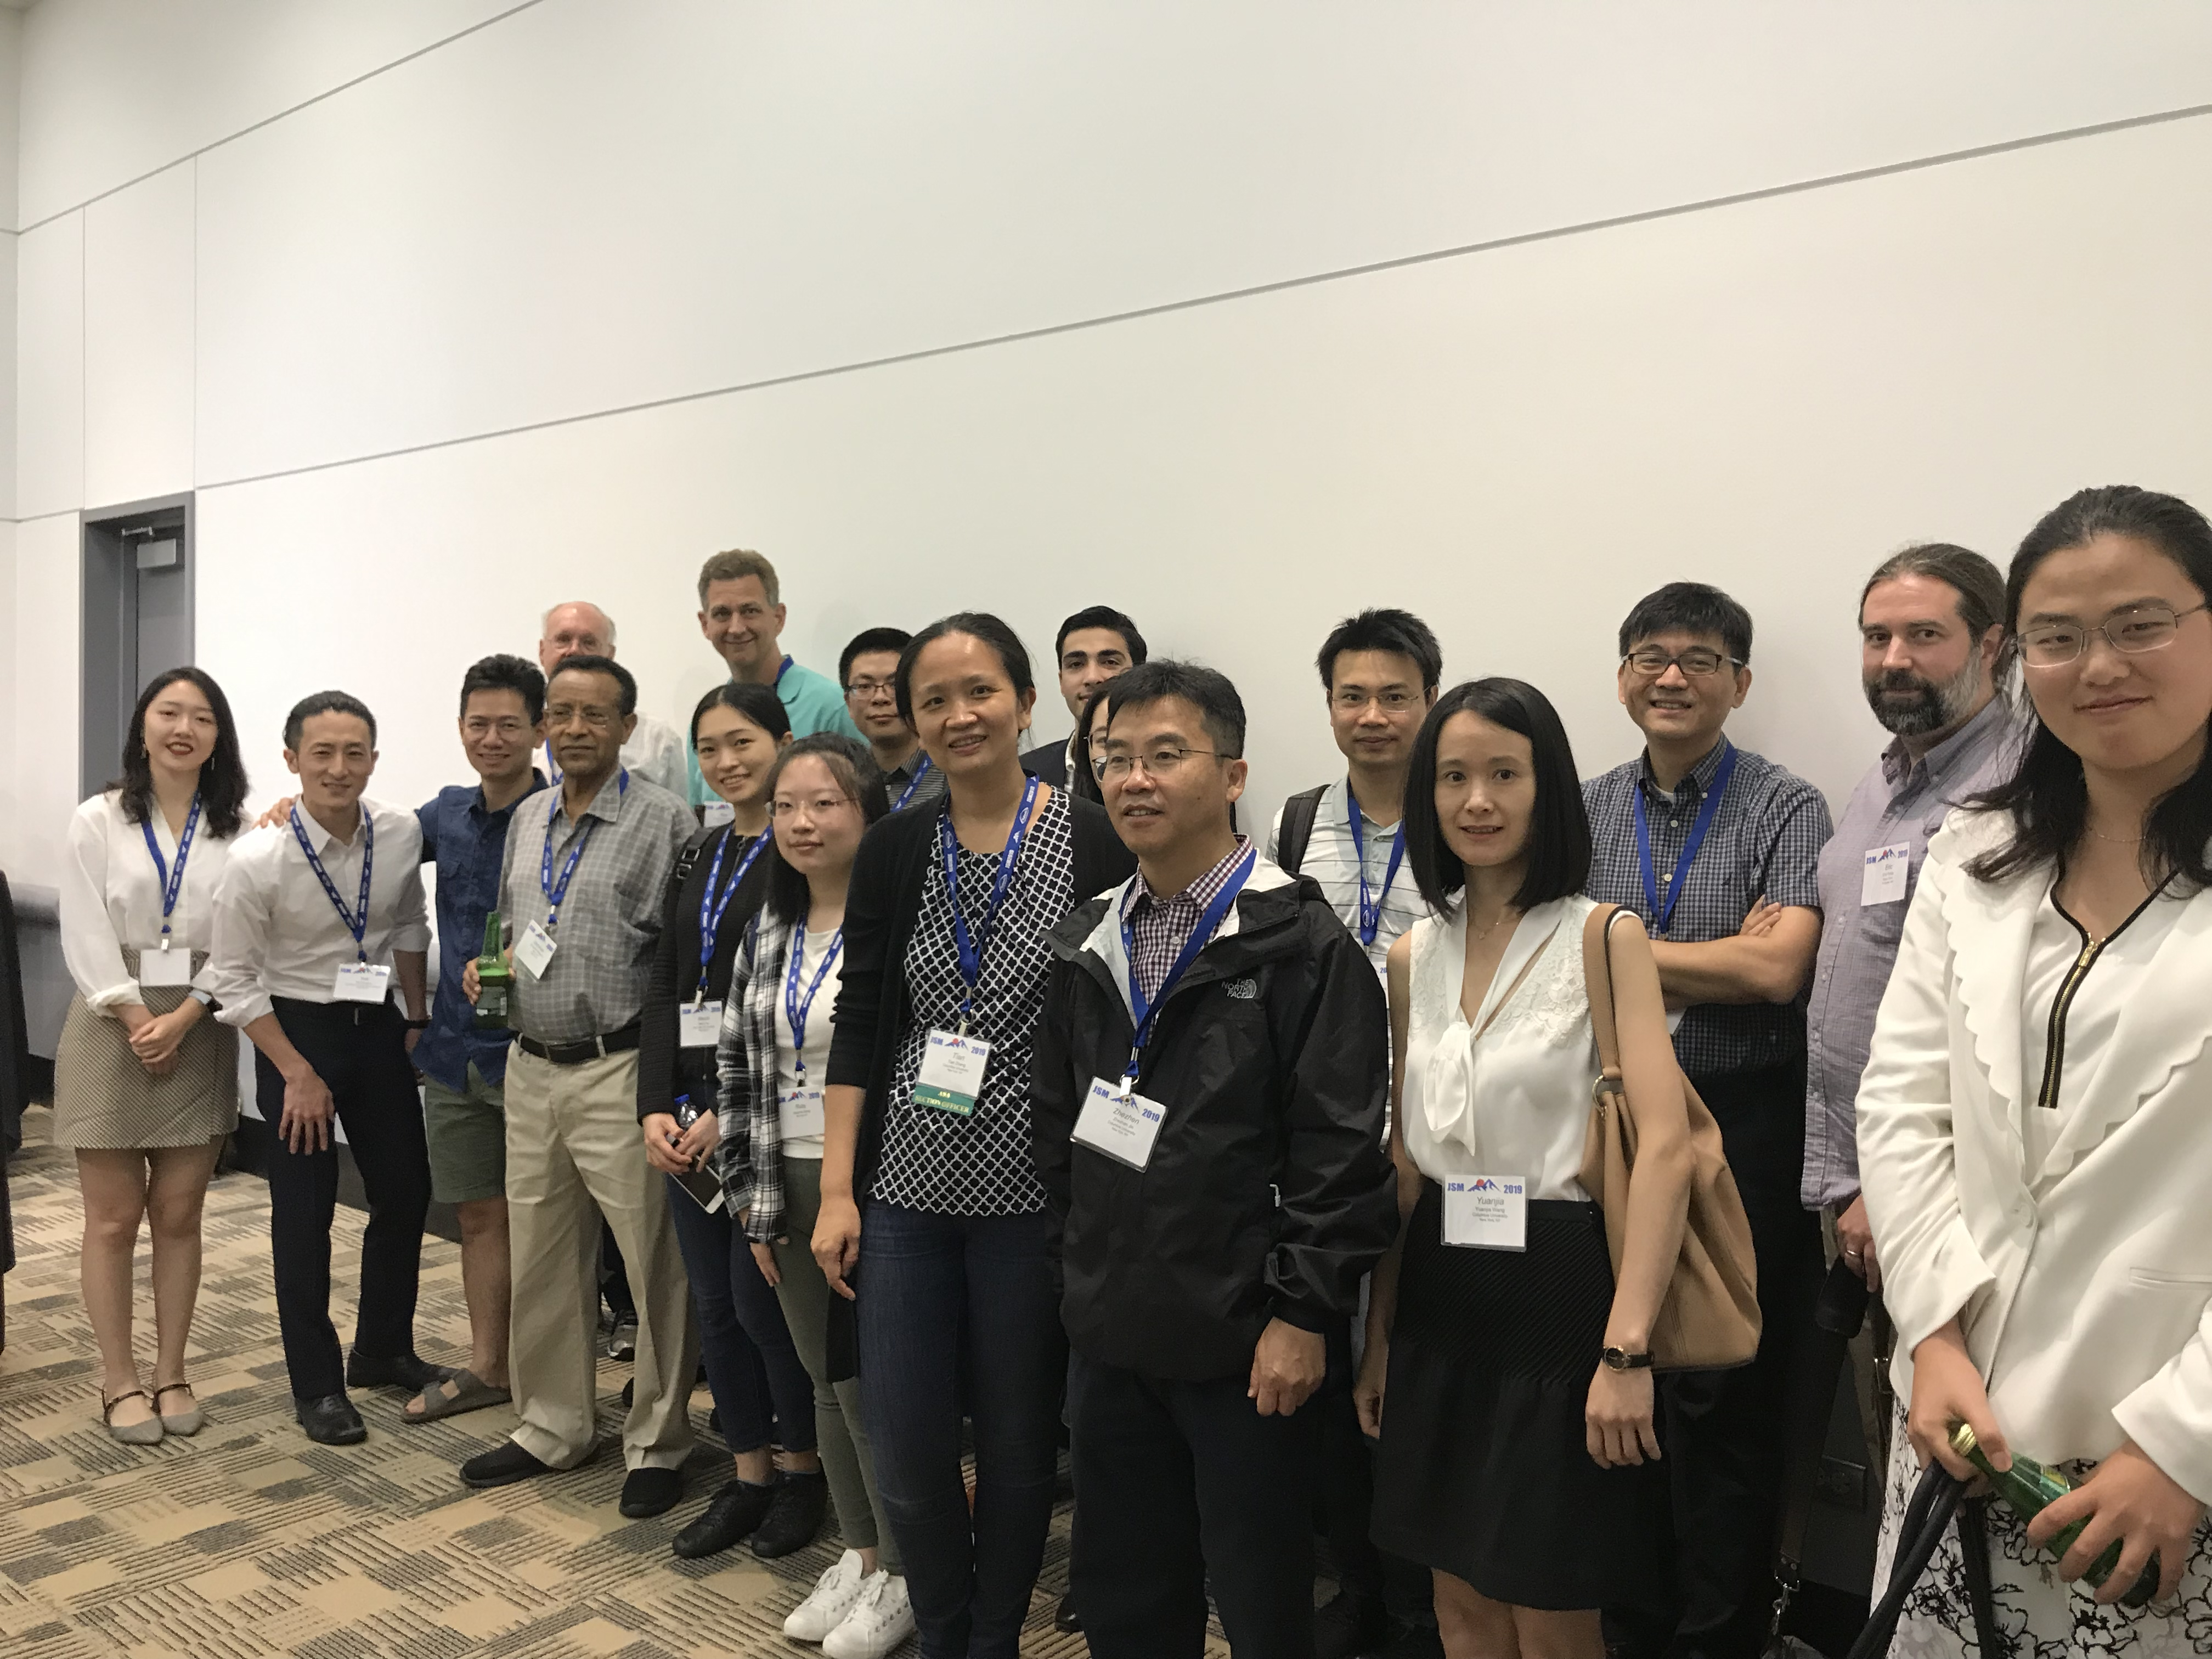 Joint JSM 2019 reception of Columbia Statistics and Biostatistics brought together faculty, students and alums in Denver, Colorado.